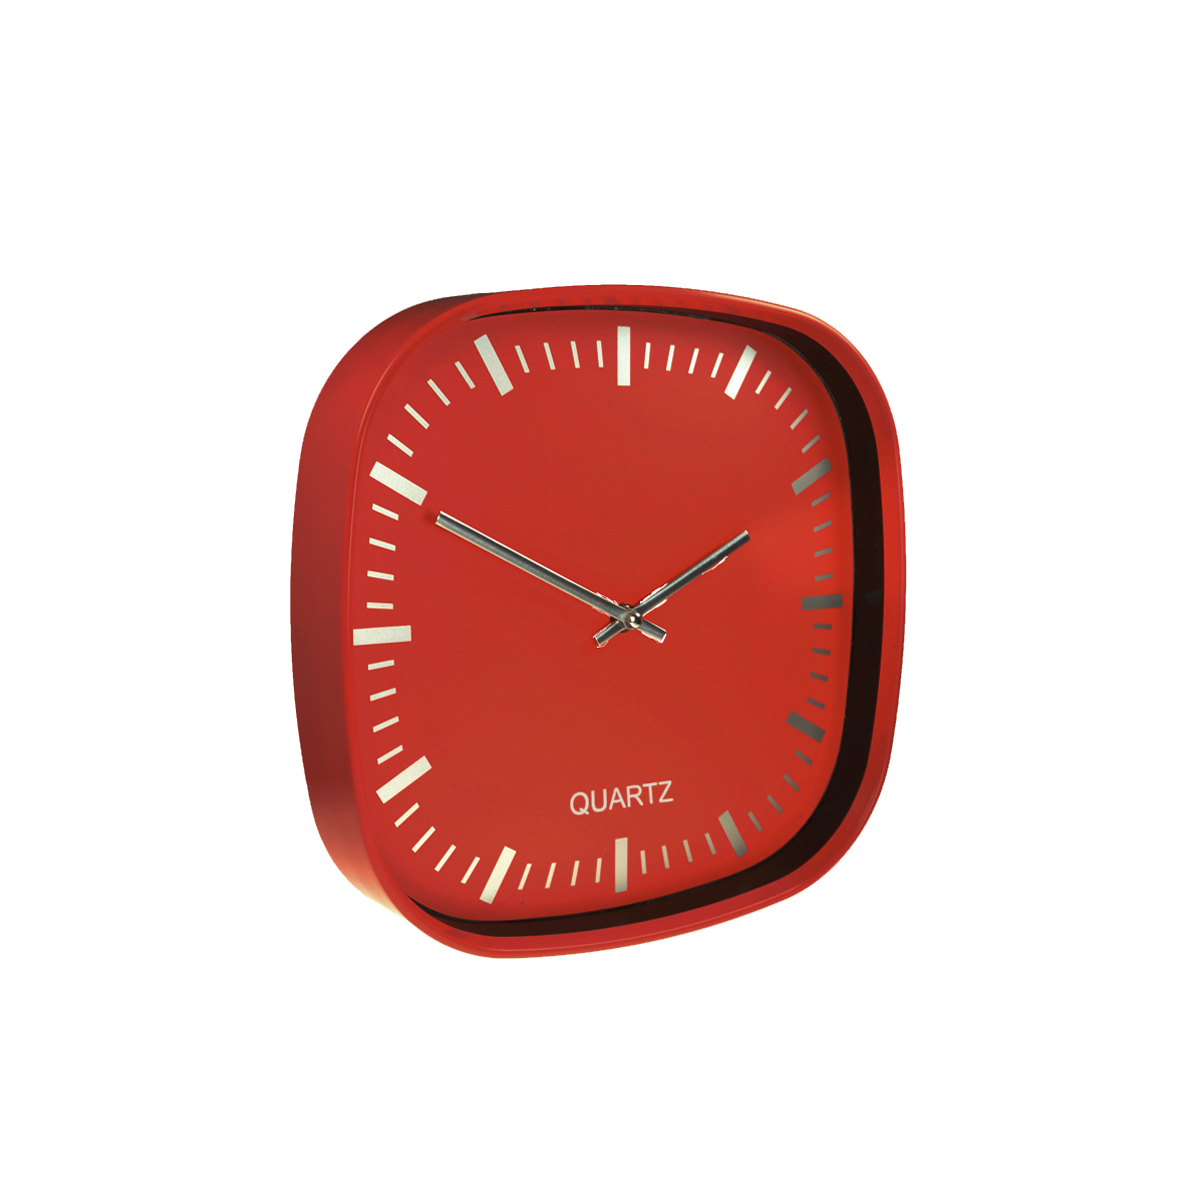 Plastic Wall Clock 30 - hmi36030-04 (Red)